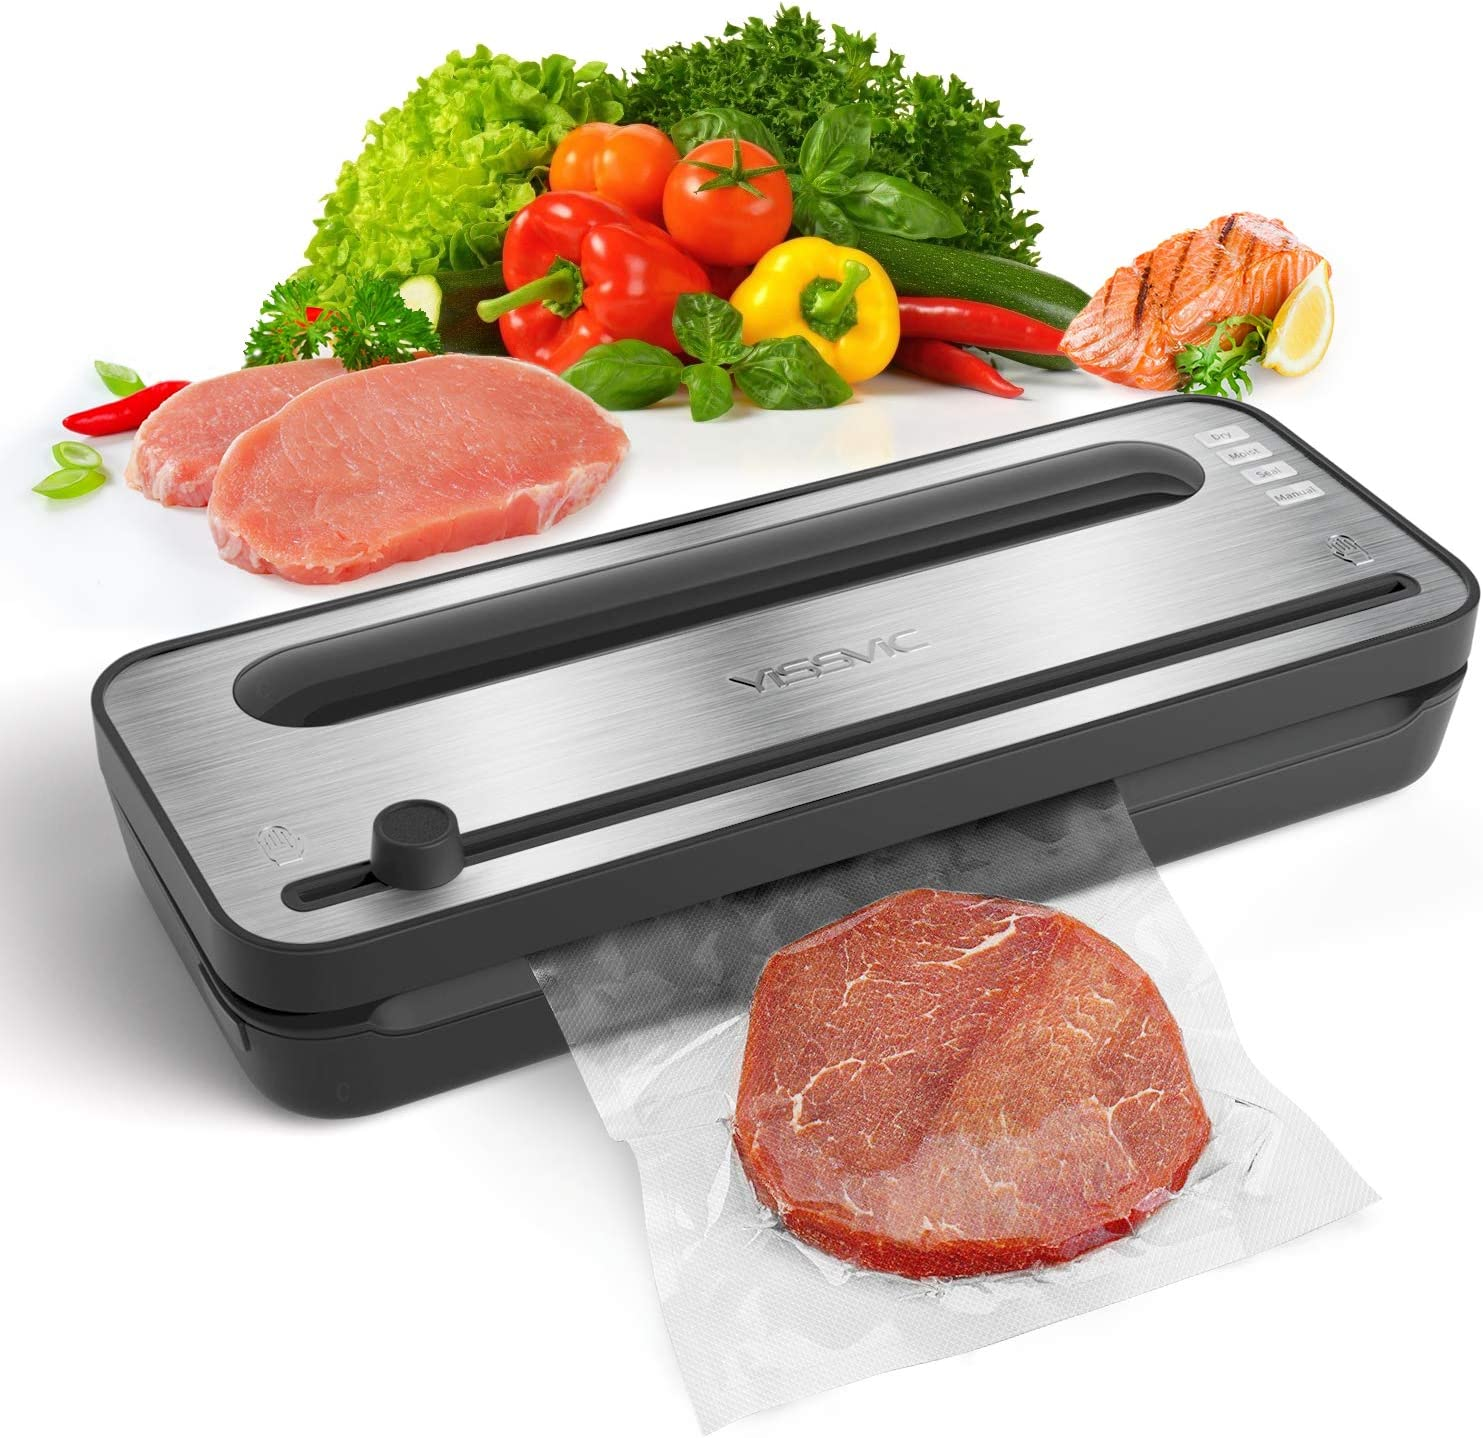 YISSVIC Vacuum Sealer Automatic Vacuum Sealing Machine with Dry and Moist Food Modes for Food Preservation and Sous Vide (Come With 1 Roll Vacuum Bag)